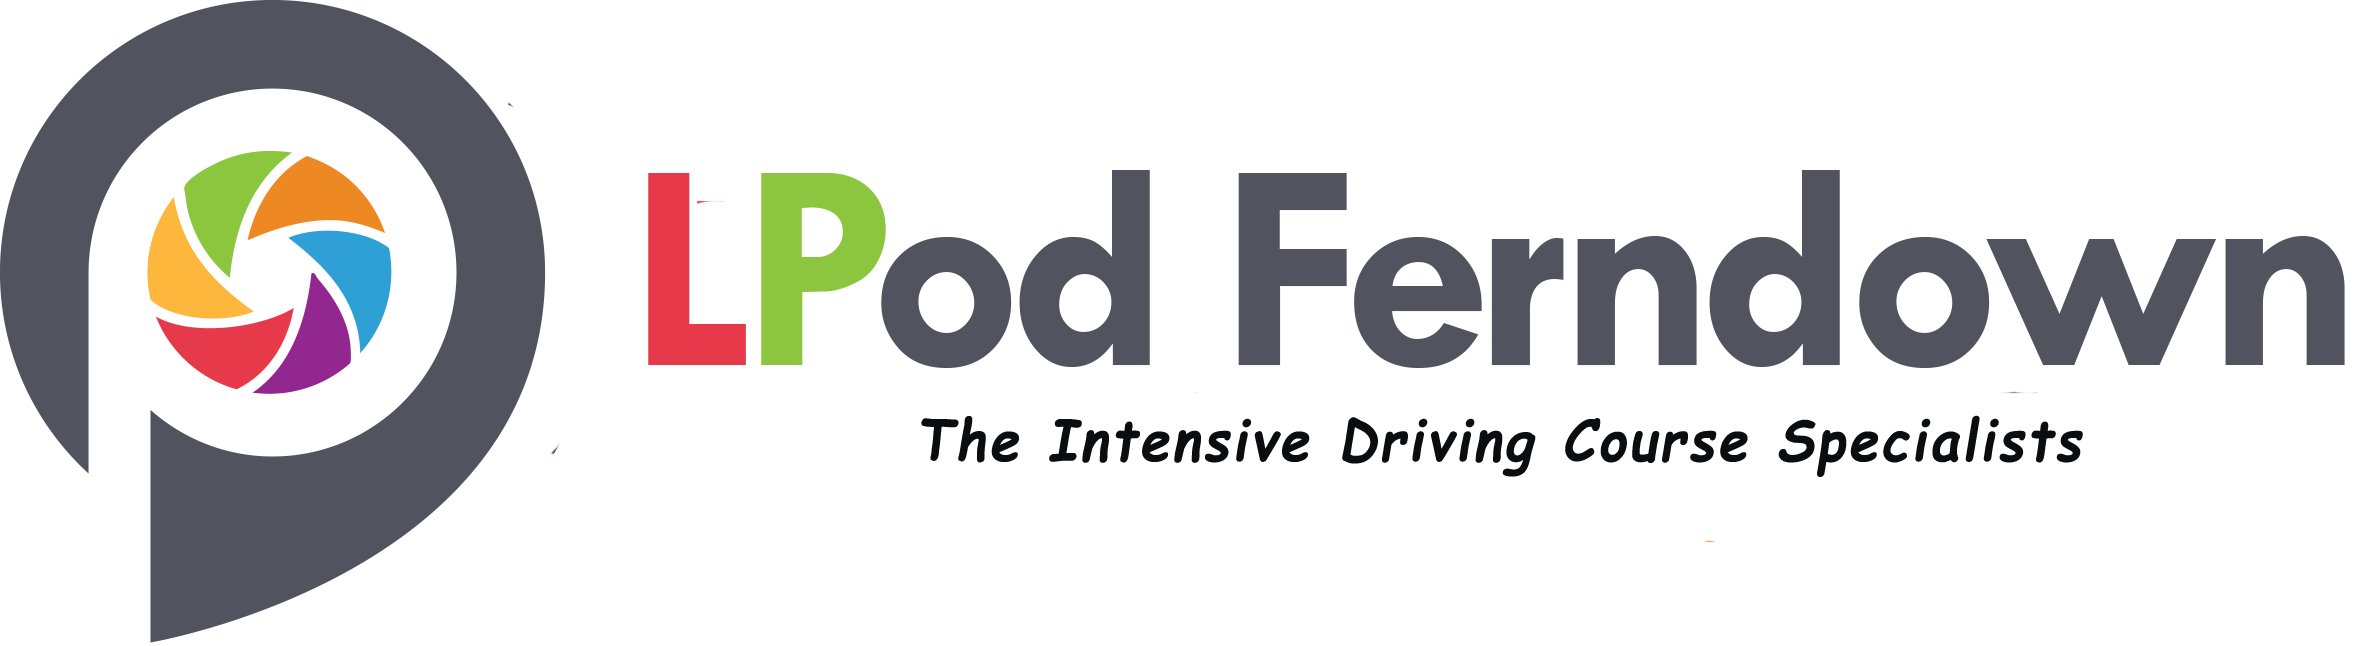 intensive driving courses Ferndown